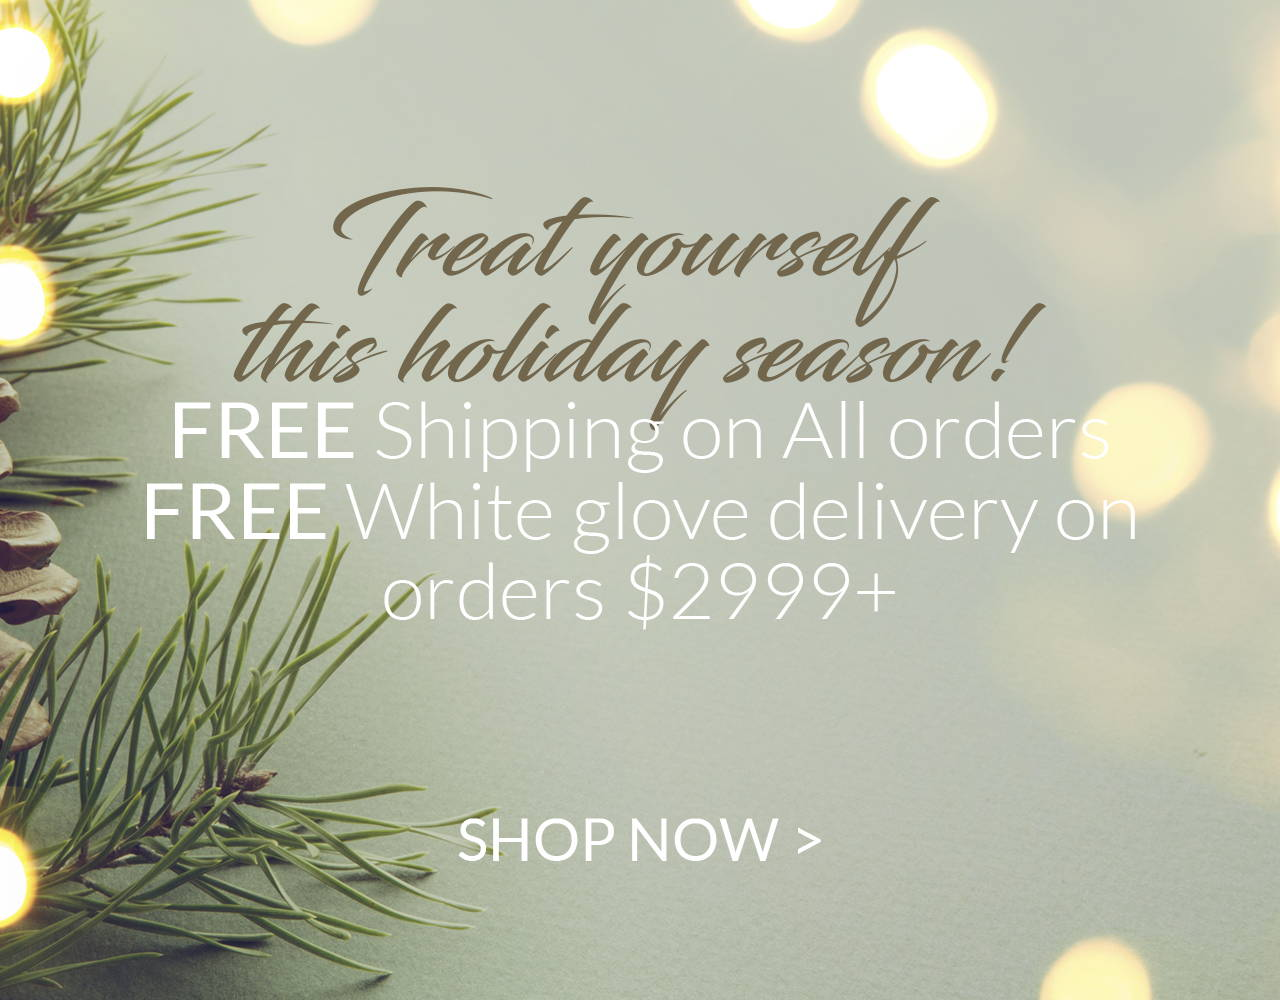 Treat yourself this holiday season! Free Shipping on All orders. Free white glove delivery on orders $2999+